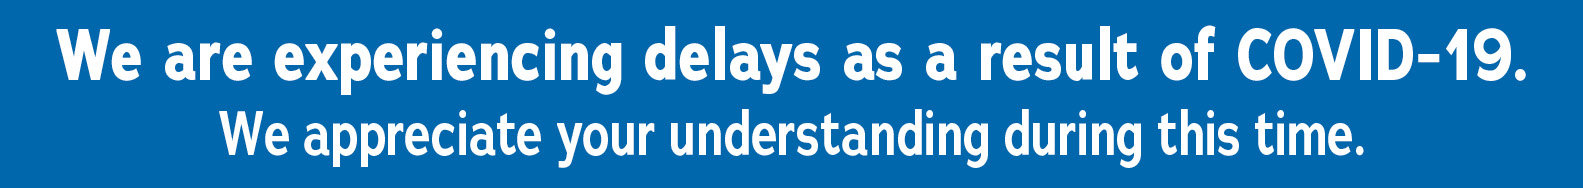 We are experiencing delays as a result of COVID-19. We appreciate your understanding during this time.